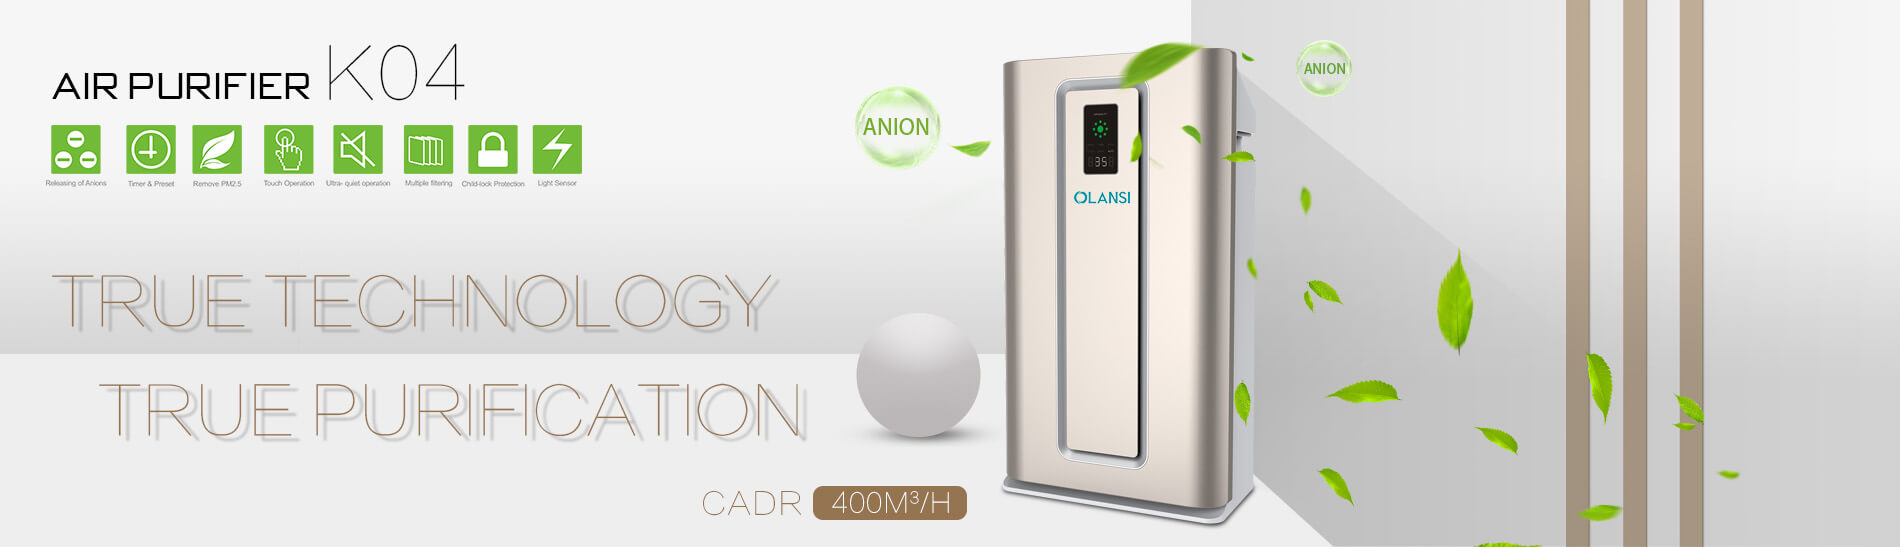 Olansi Healthcare Co., Ltd Introduces State-of-the-Art Negative ion Air Purifiers to Improve Indoor Air Quality For Worldwide People